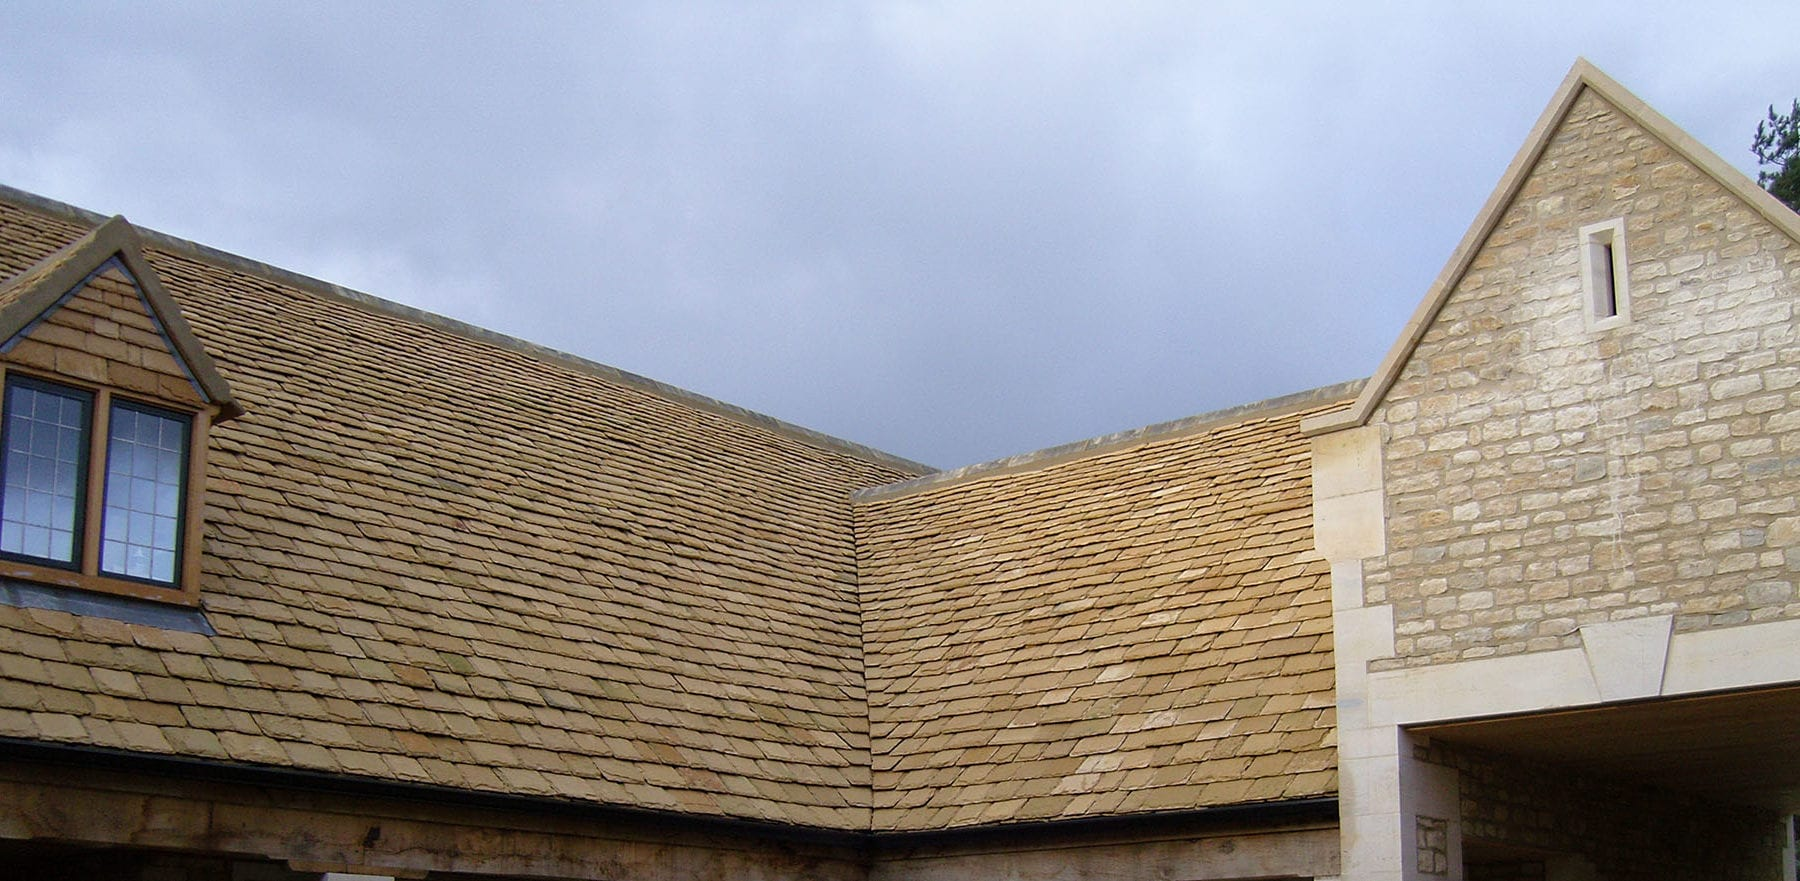 Lifestiles - Natural Stone Roof Tiles - The Stables, England 2